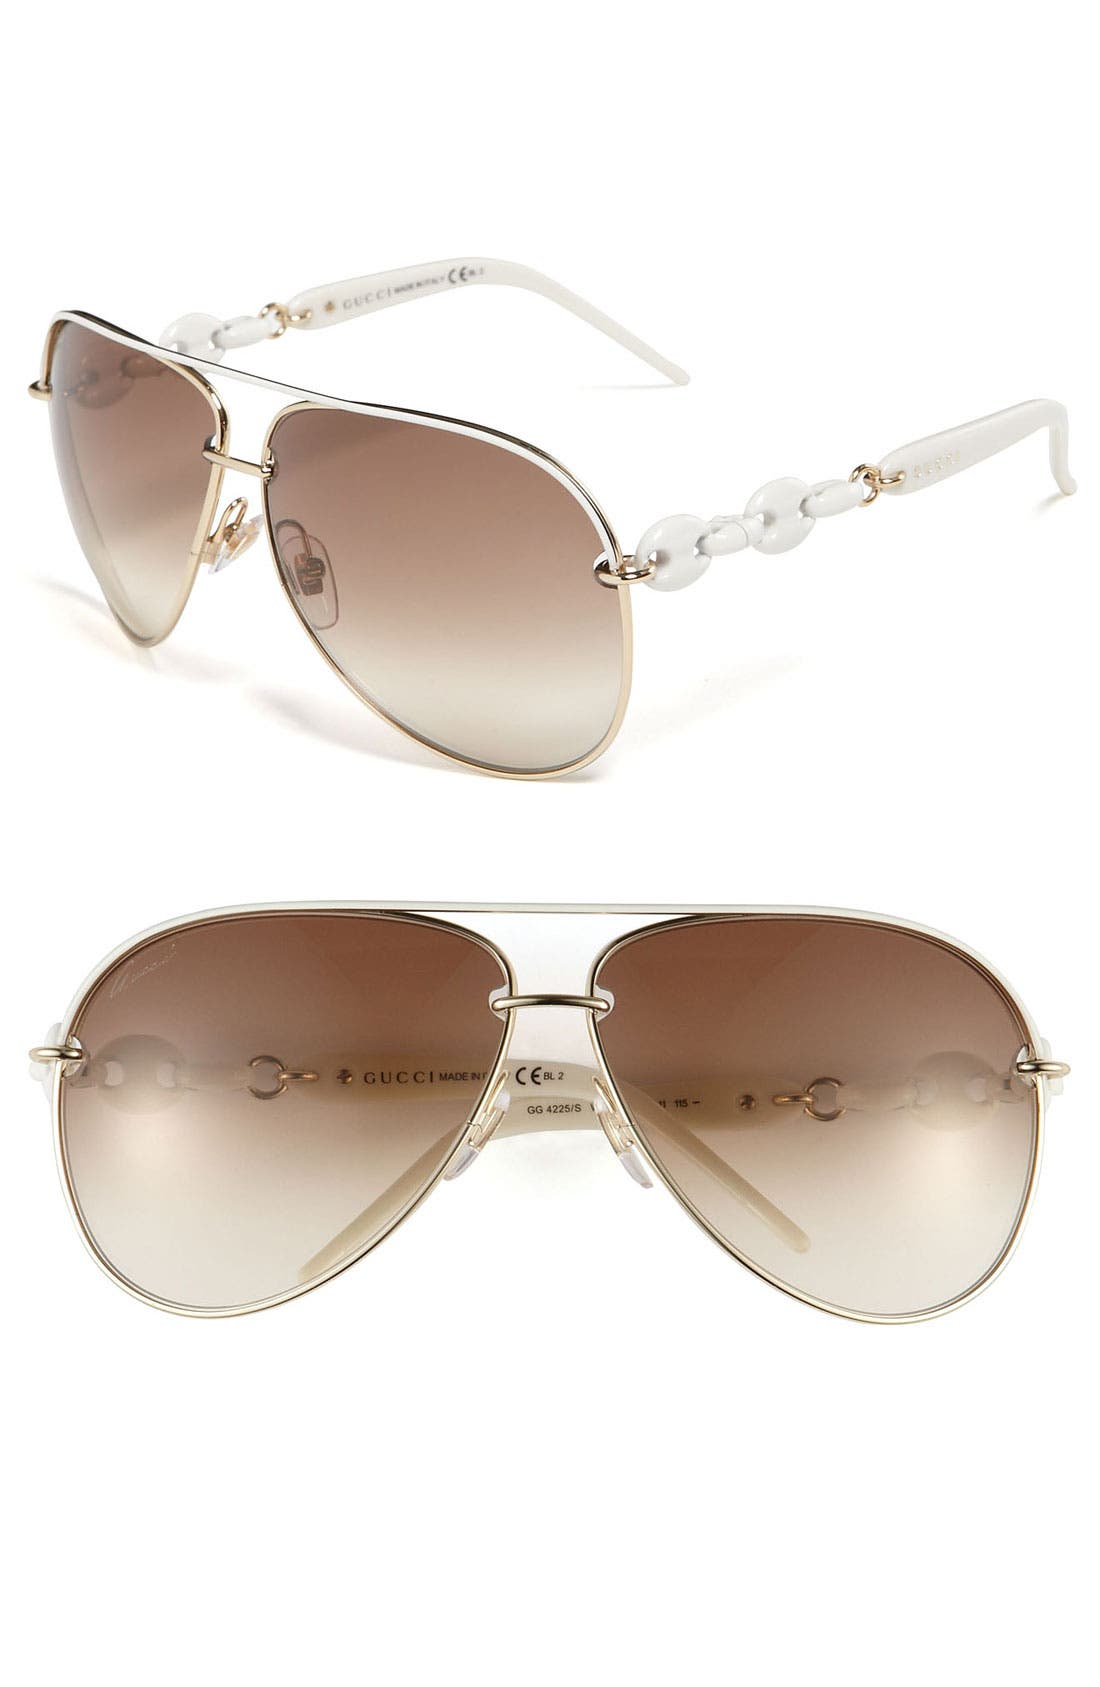 Main Image - Gucci 'Marina Chain' 63mm Aviator Sunglasses